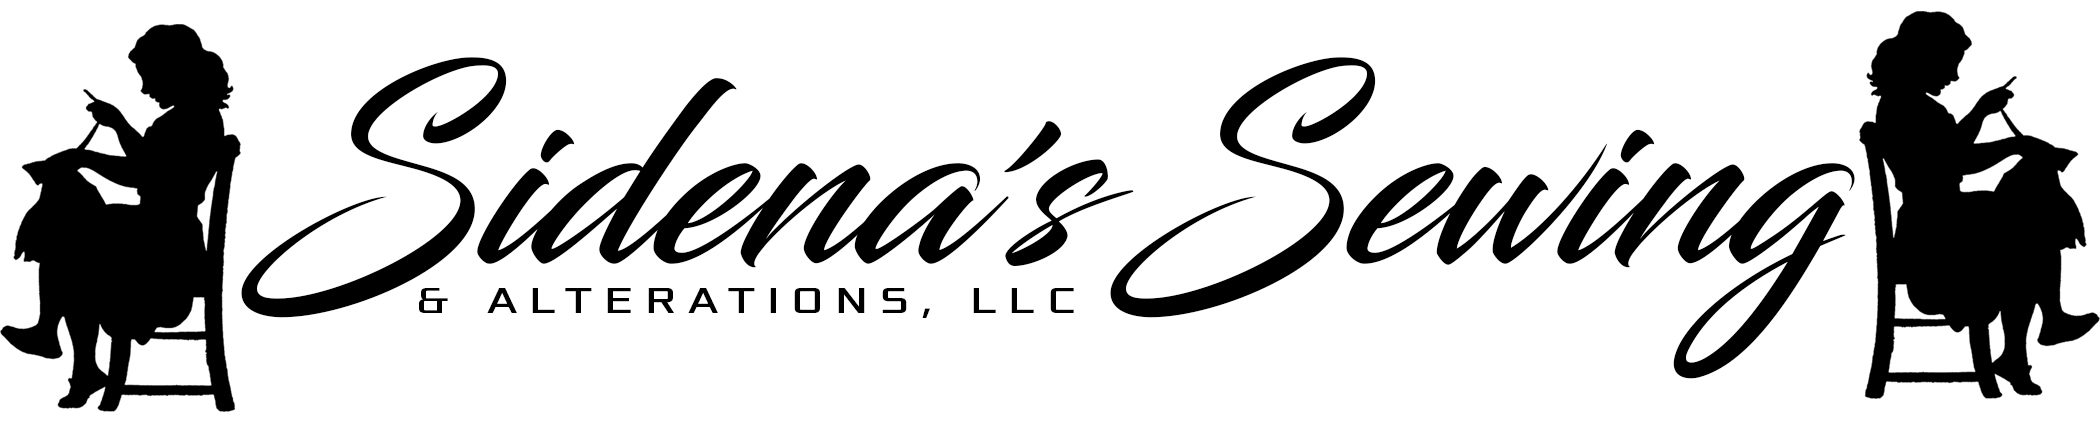 Sidena's Sewing & Alterations, LLC